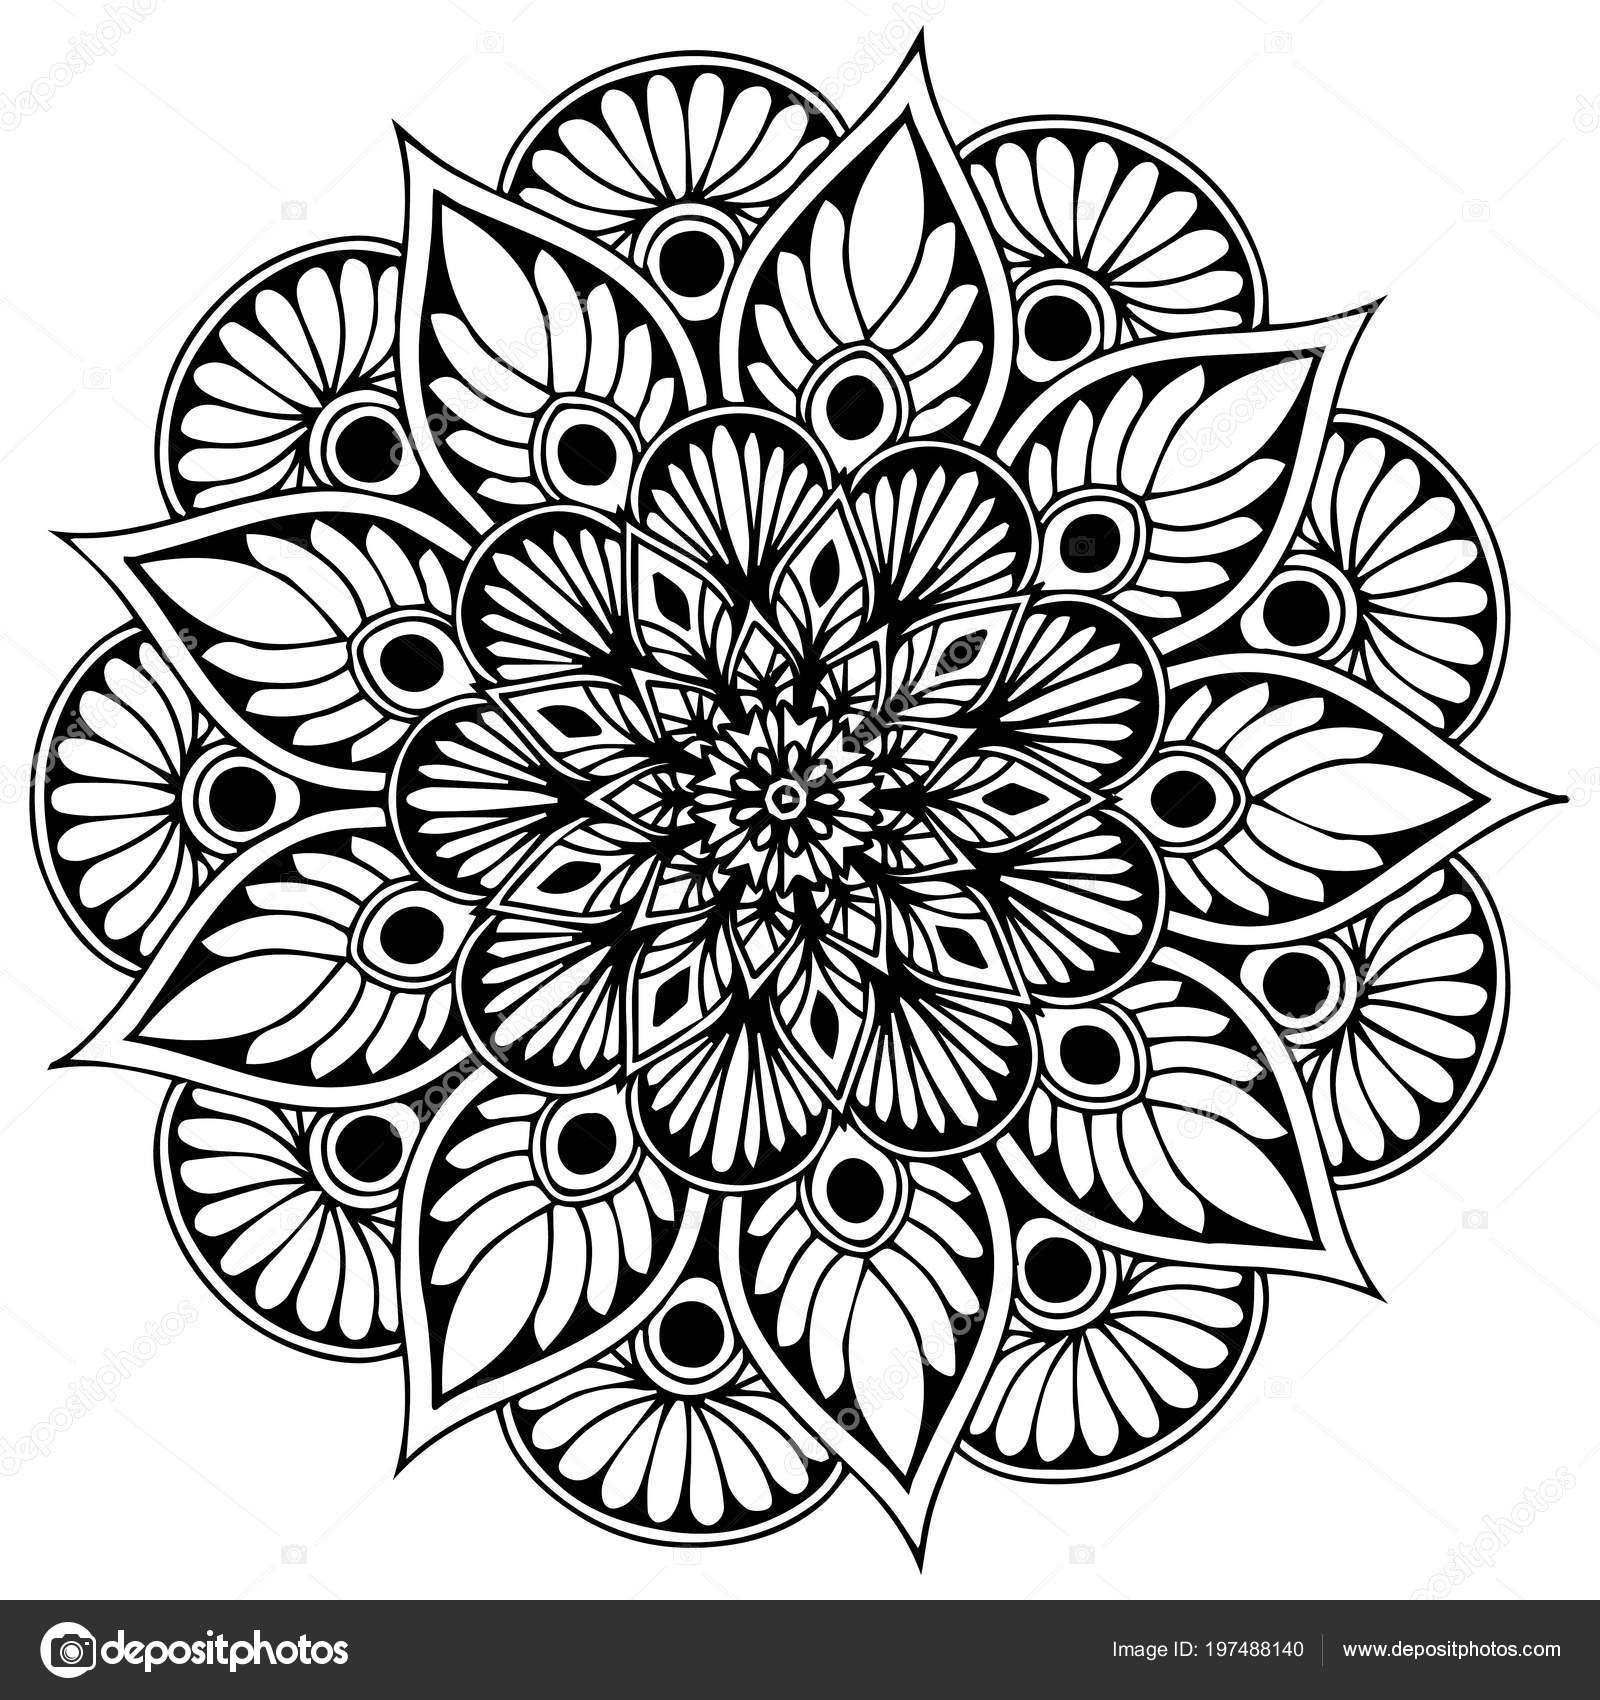 Mandalas Coloring Book Decorative Ornaments Unusual Flower Shape ...